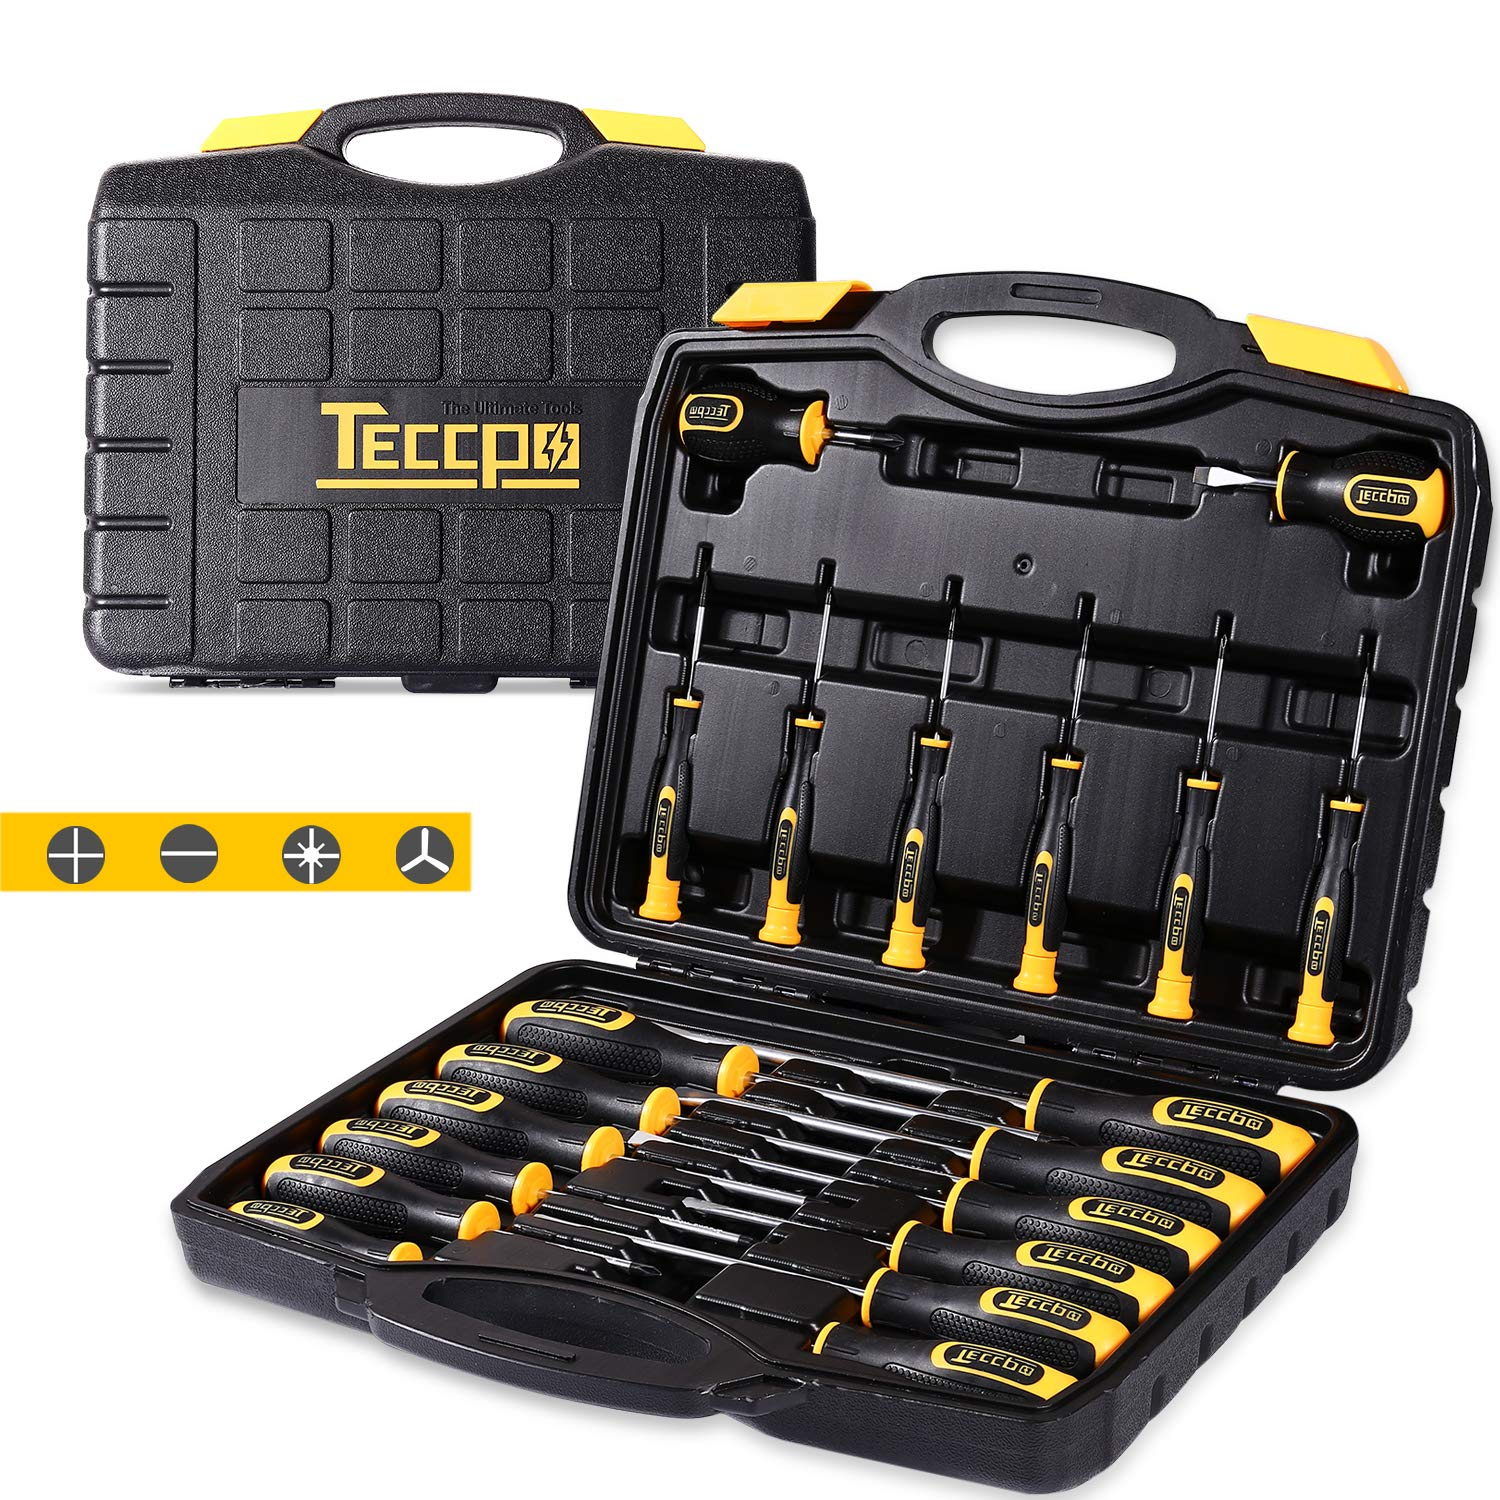 Screwdriver Set, TECCPO Magnetic 20-Piece Screwdriver Tool Set with Case, Precision Slotted/Phillips/Torx Screwdriver with Heavy Duty Magnetic Tips, Professional Craftsman Tool Kits -THTC03H